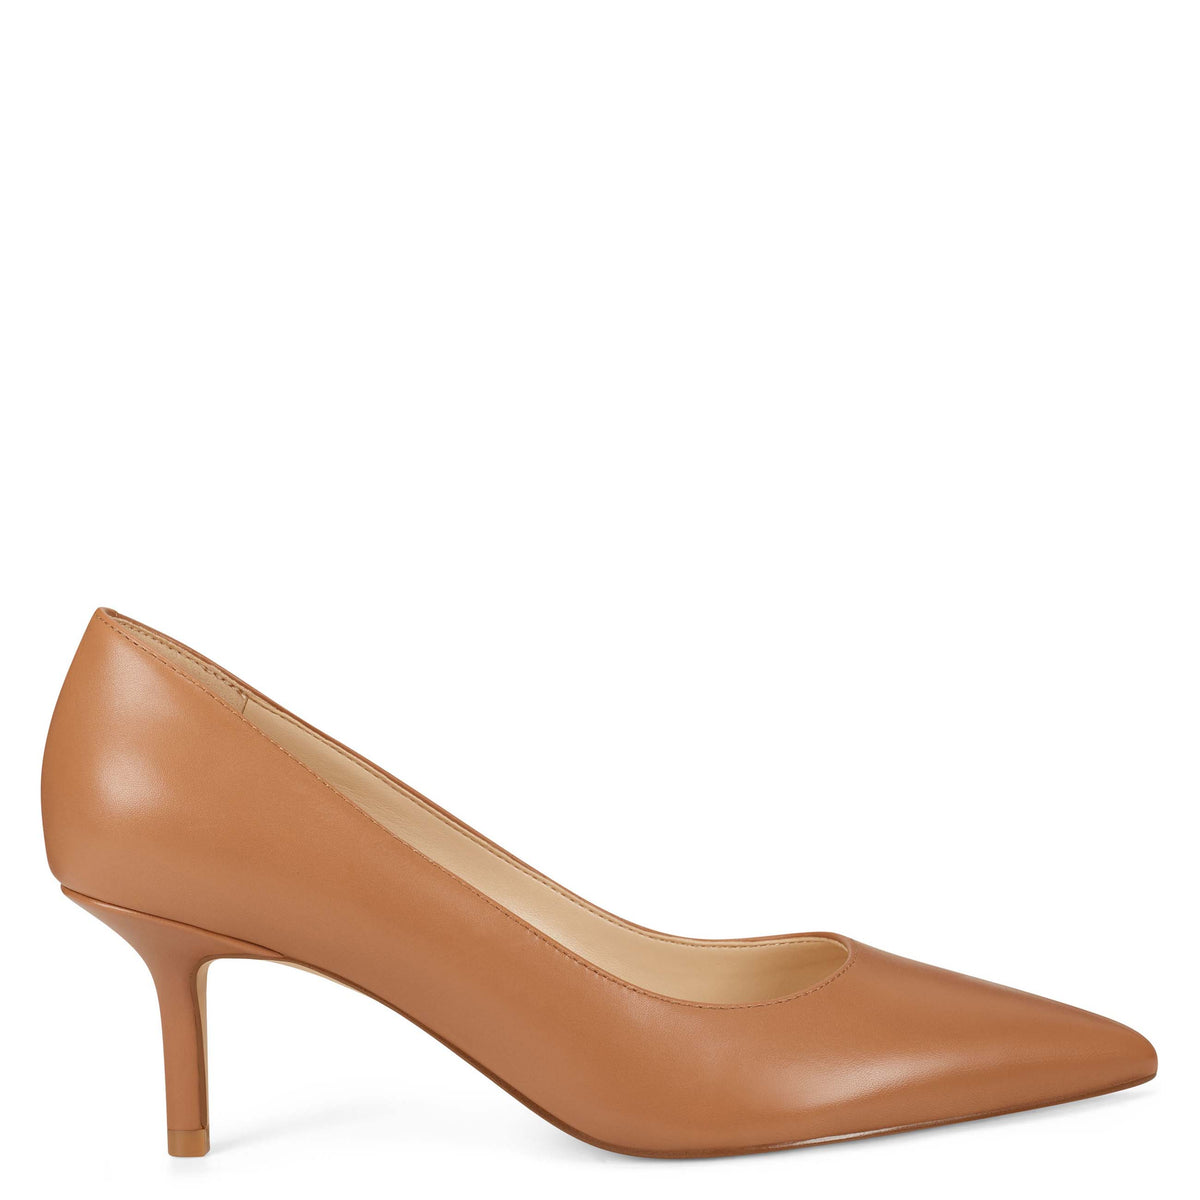 Arlene Dress Pumps